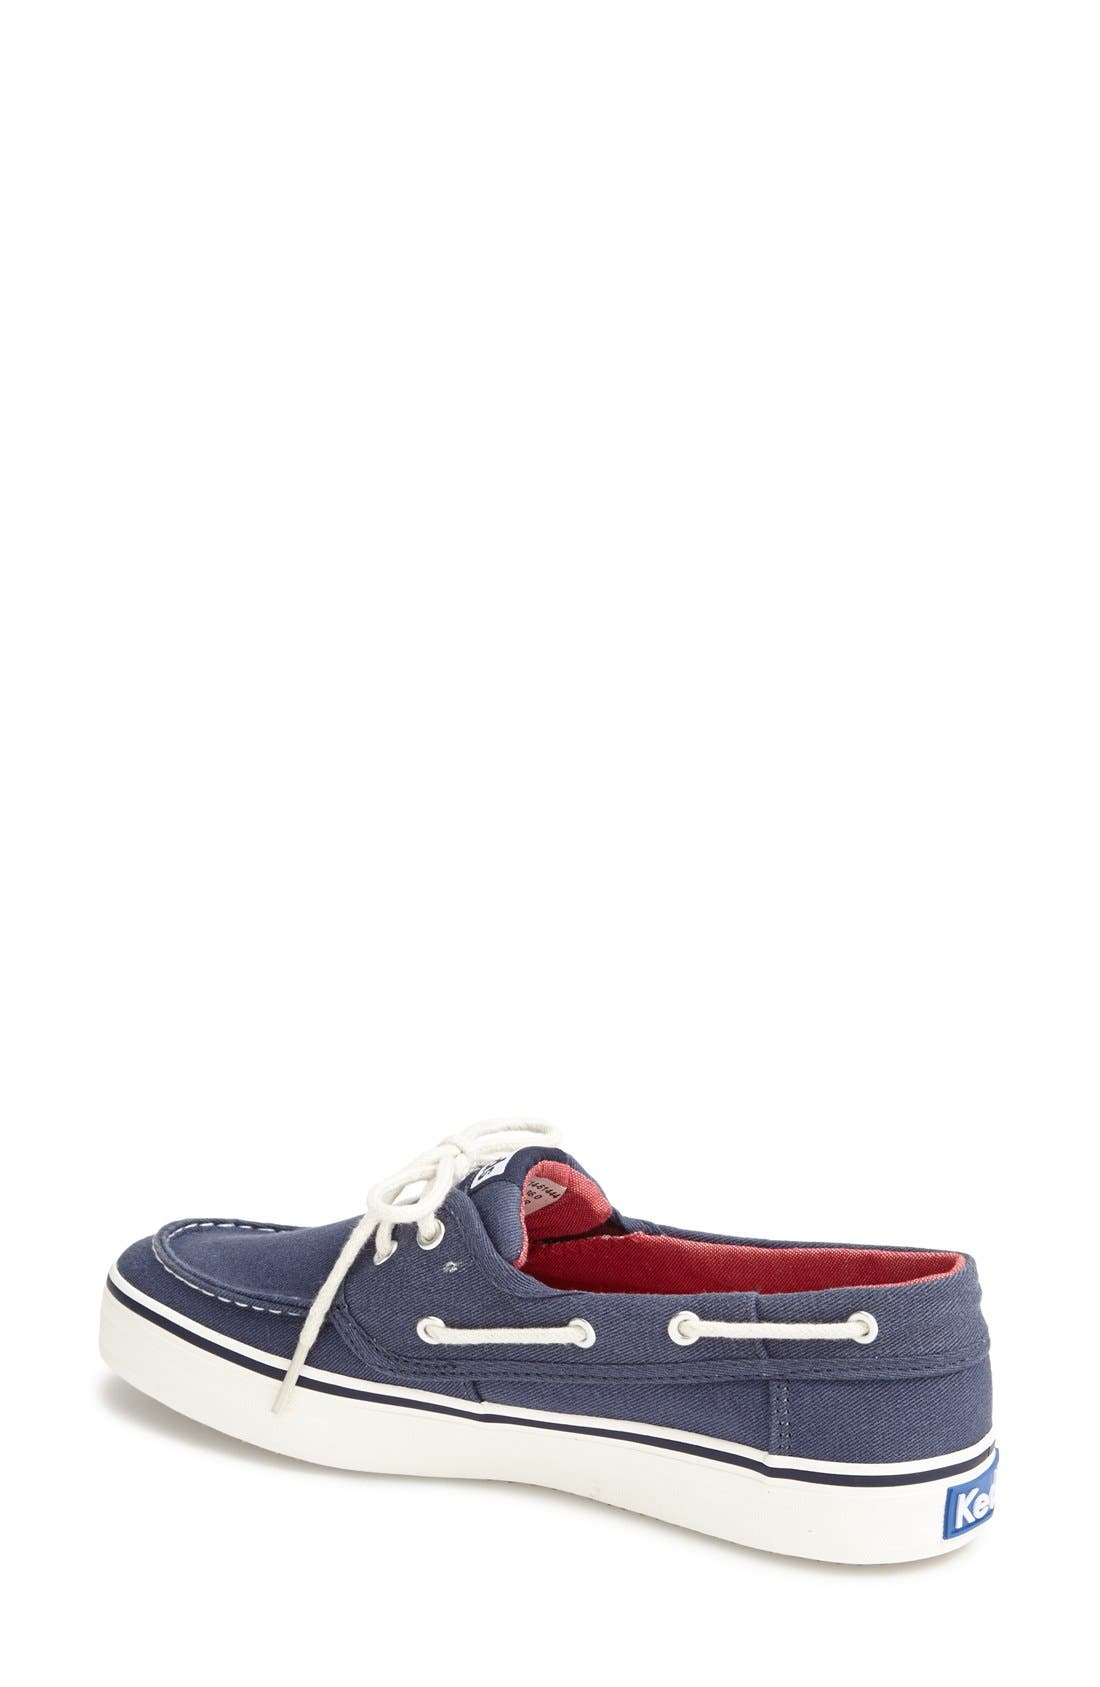 Alternate Image 2  - Keds® 'Bay Bird' Boat Shoe Sneaker (Women)